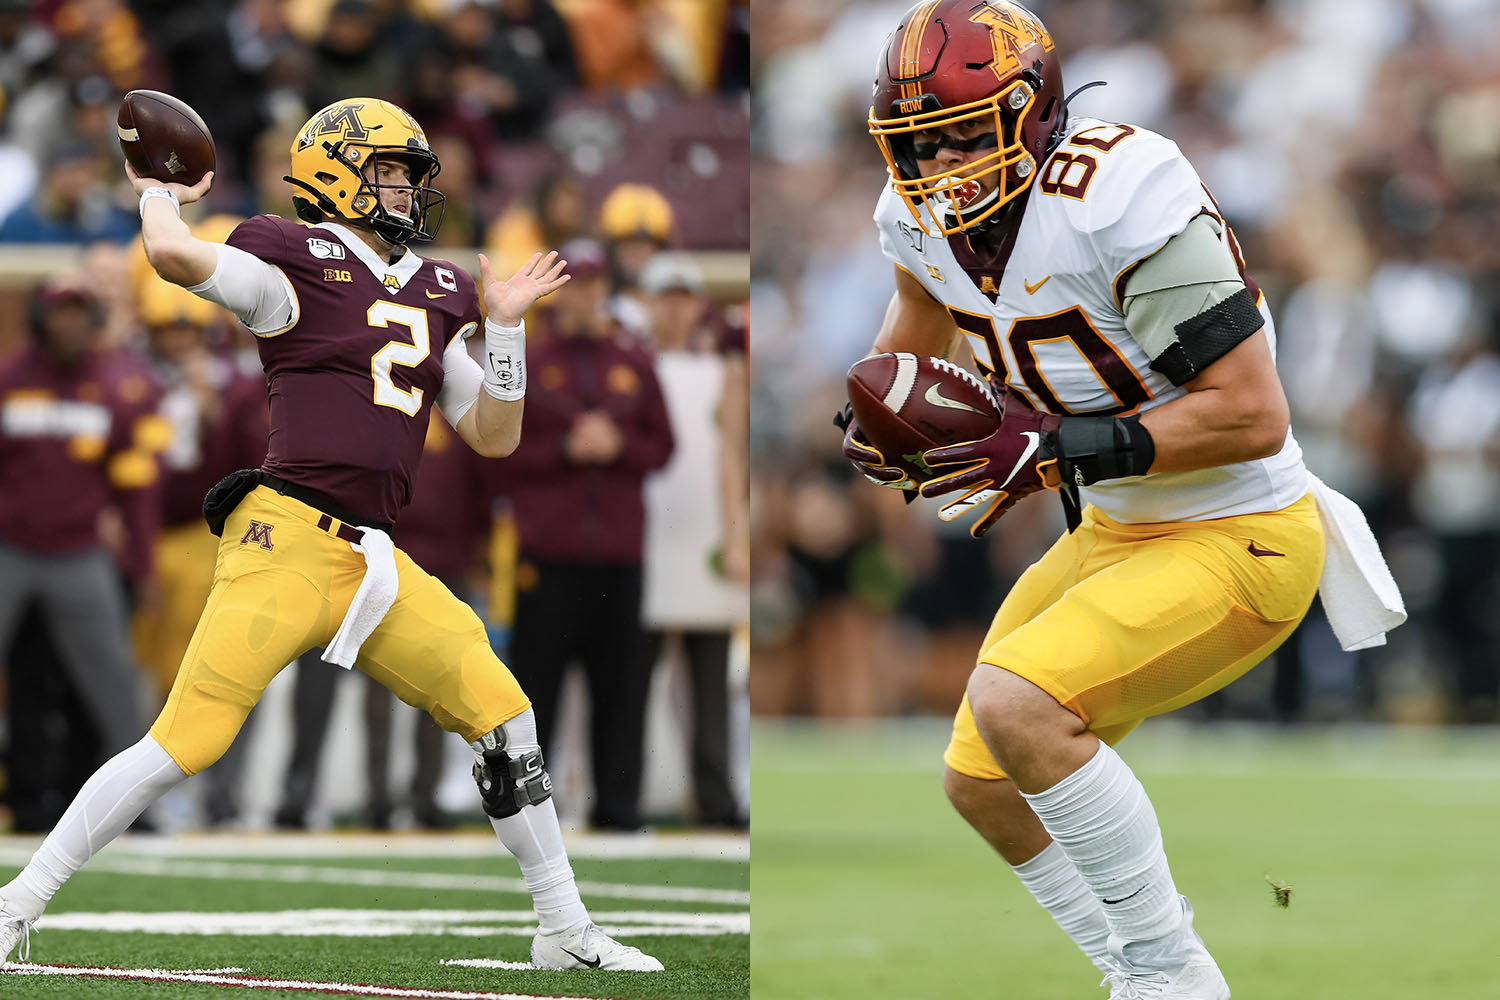 minnesota college football uniforms